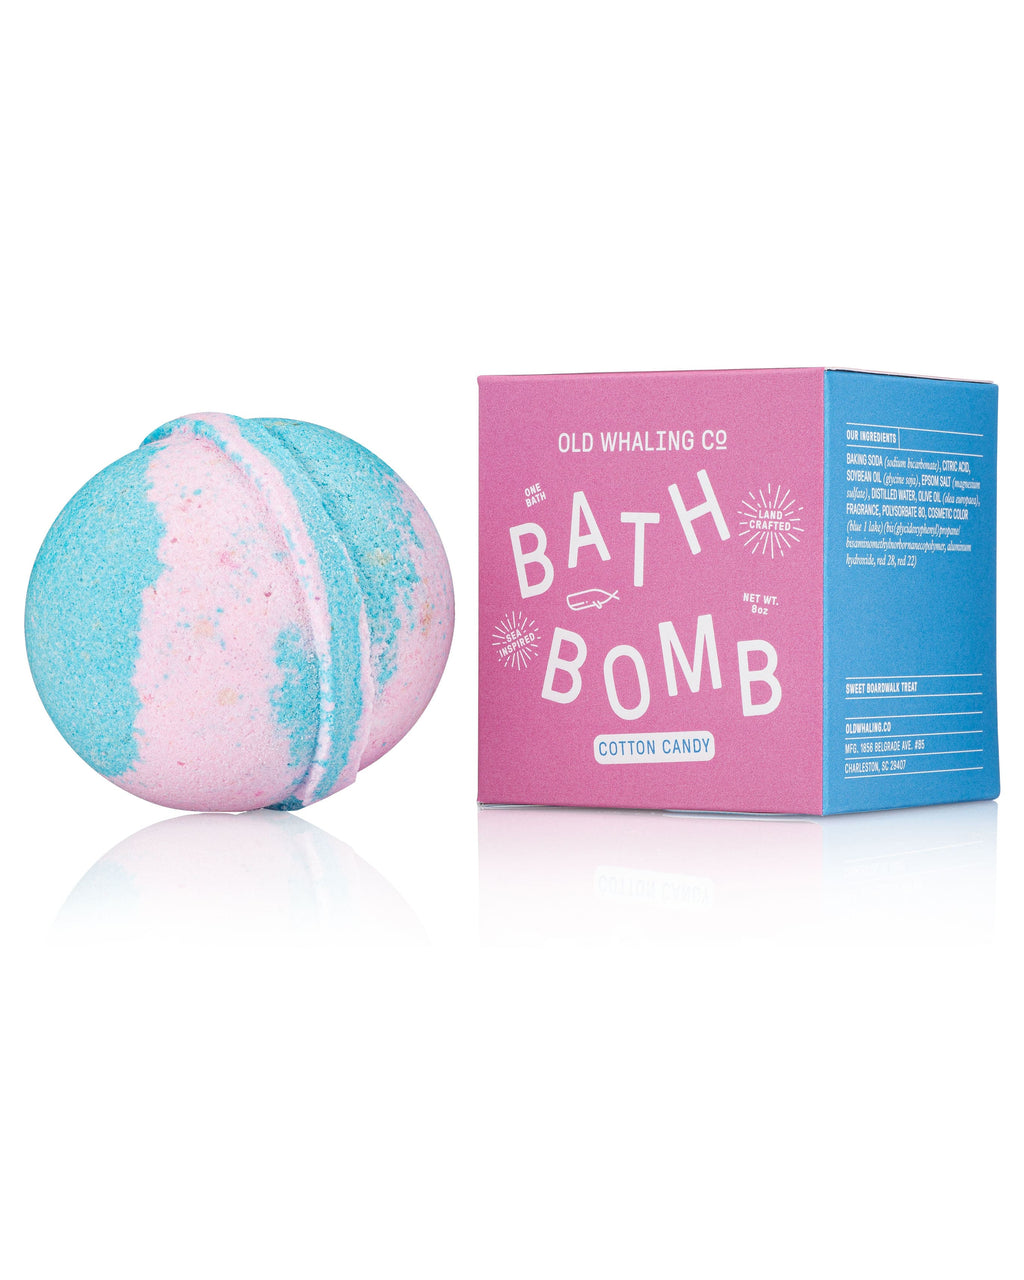 Bath Bombs!! Old Whaling Company Cotton Candy